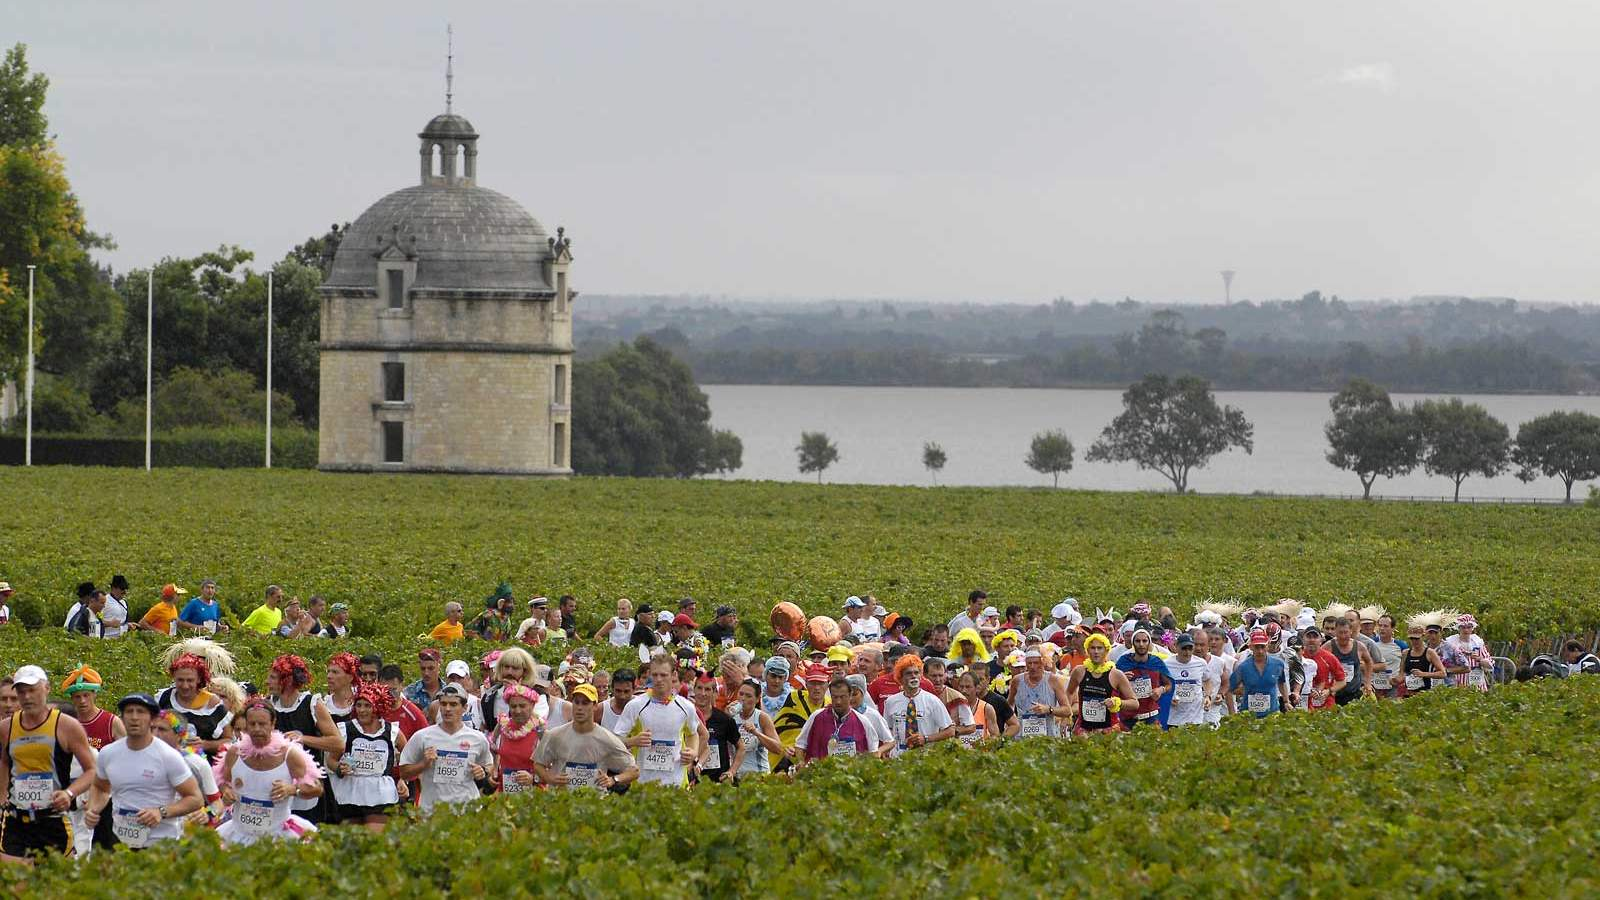 Marathon de Médoc in France